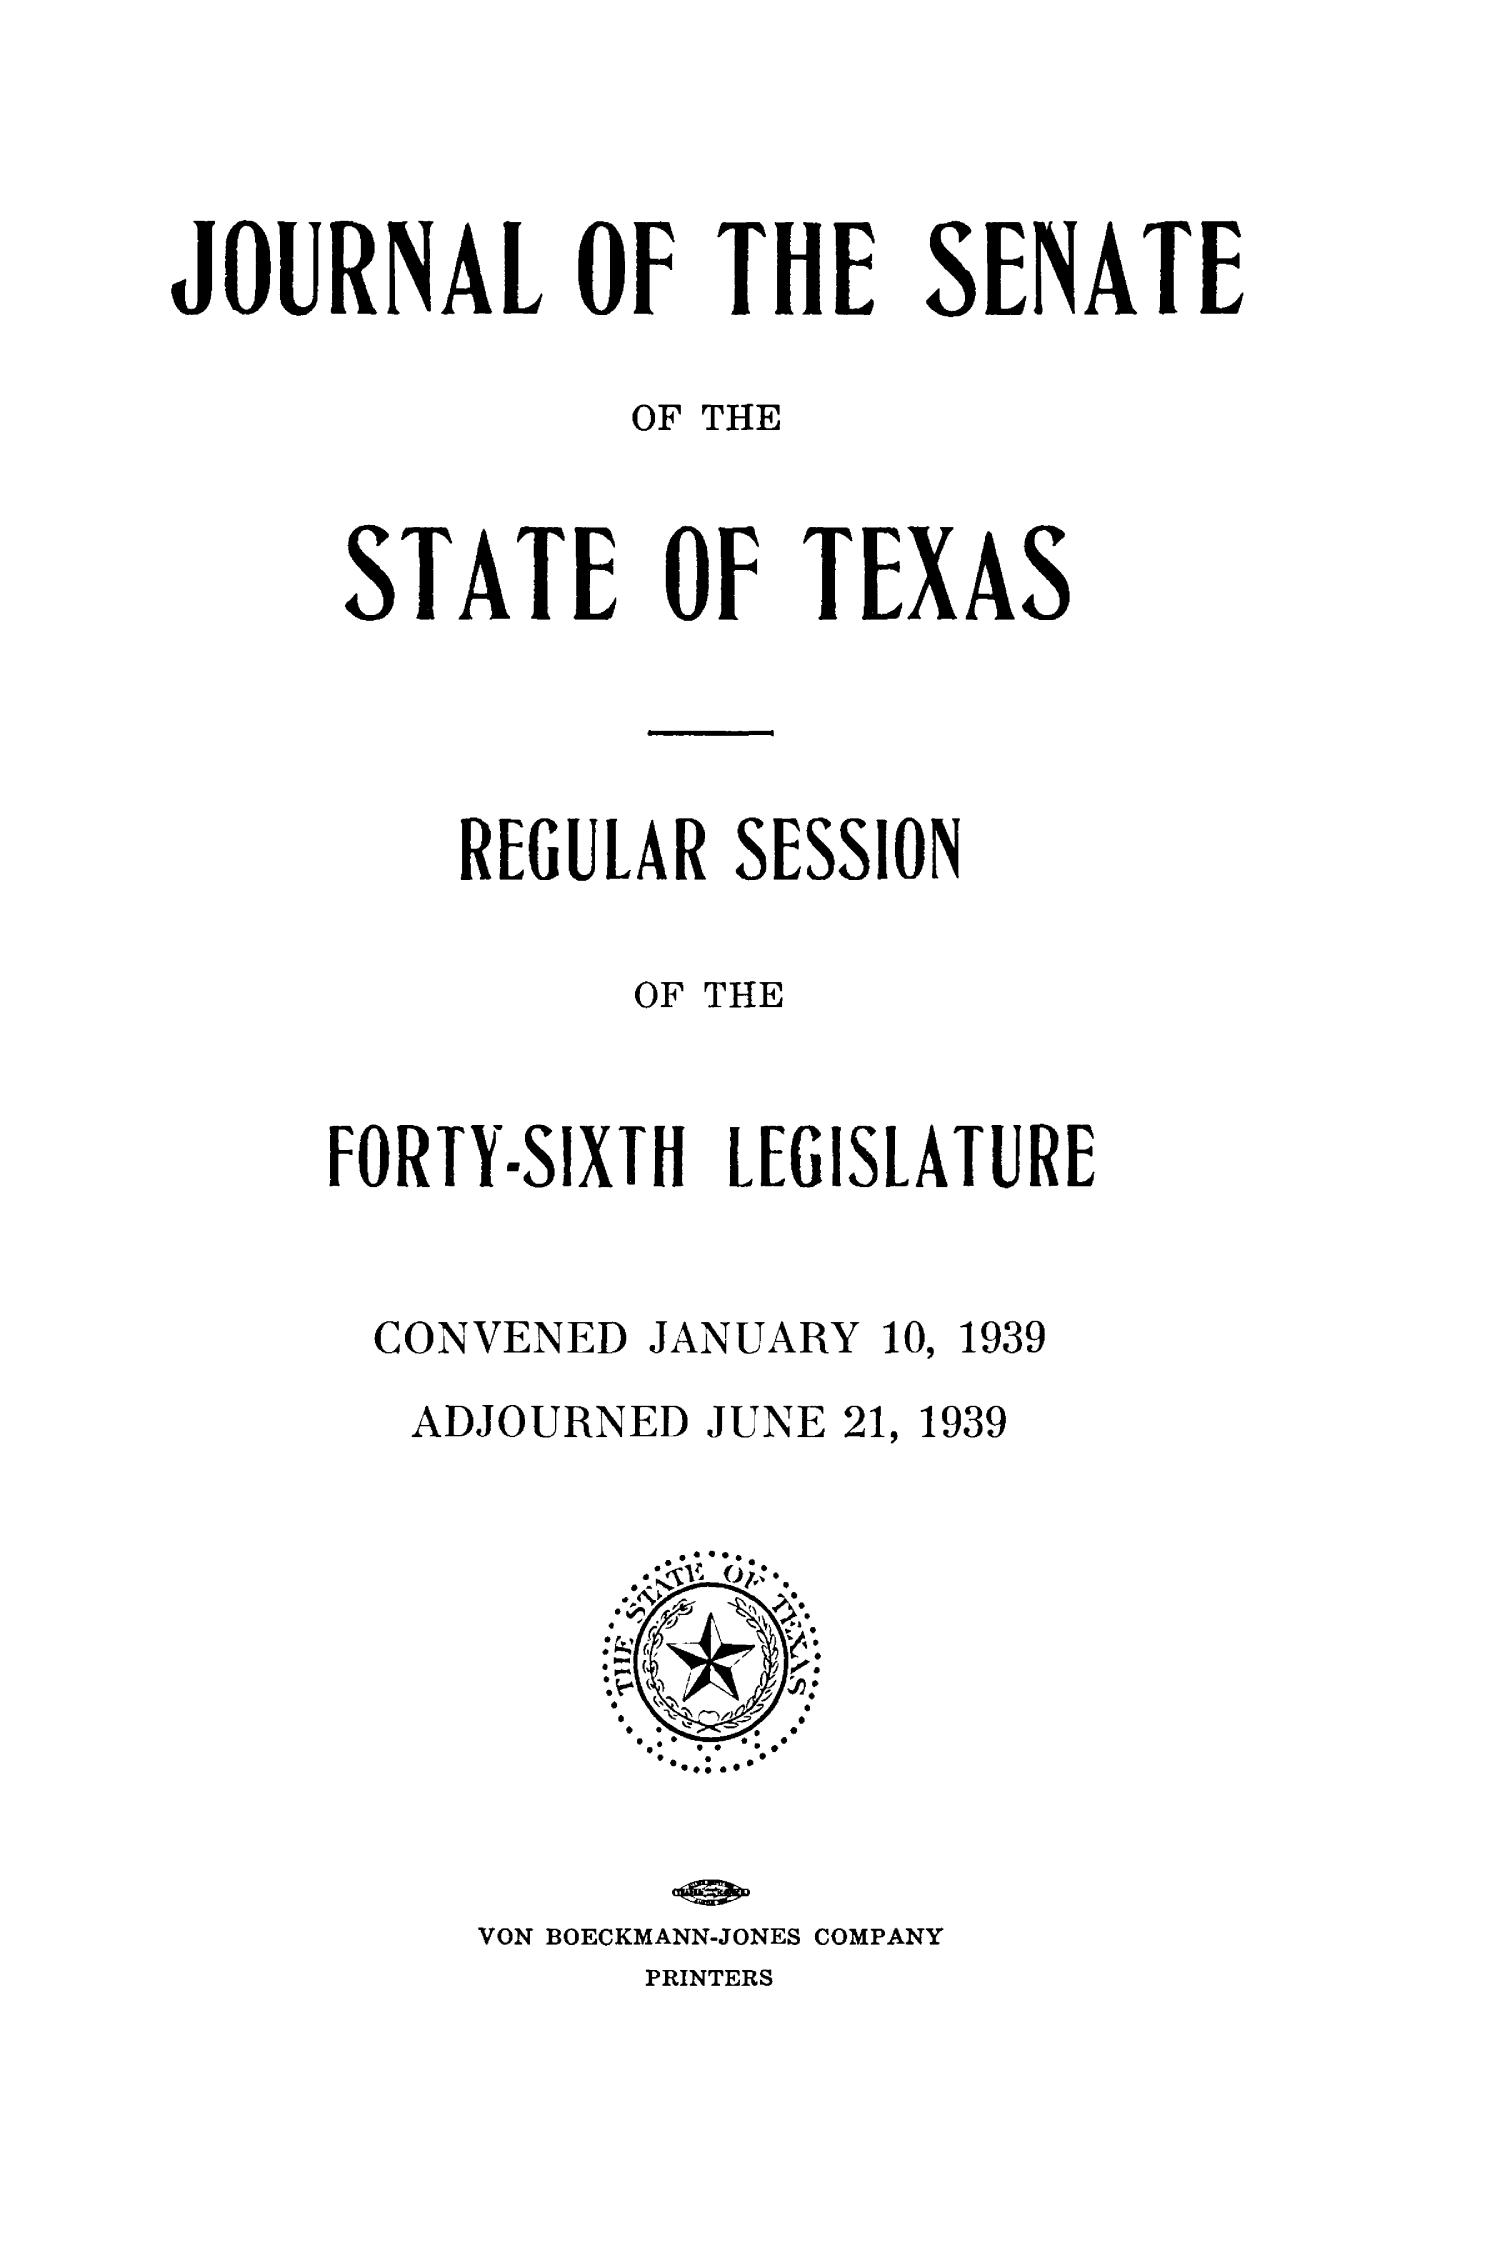 Journal of the Senate of the State of Texas, Regular Session of the Forty-Sixth Legislature                                                                                                      Title Page